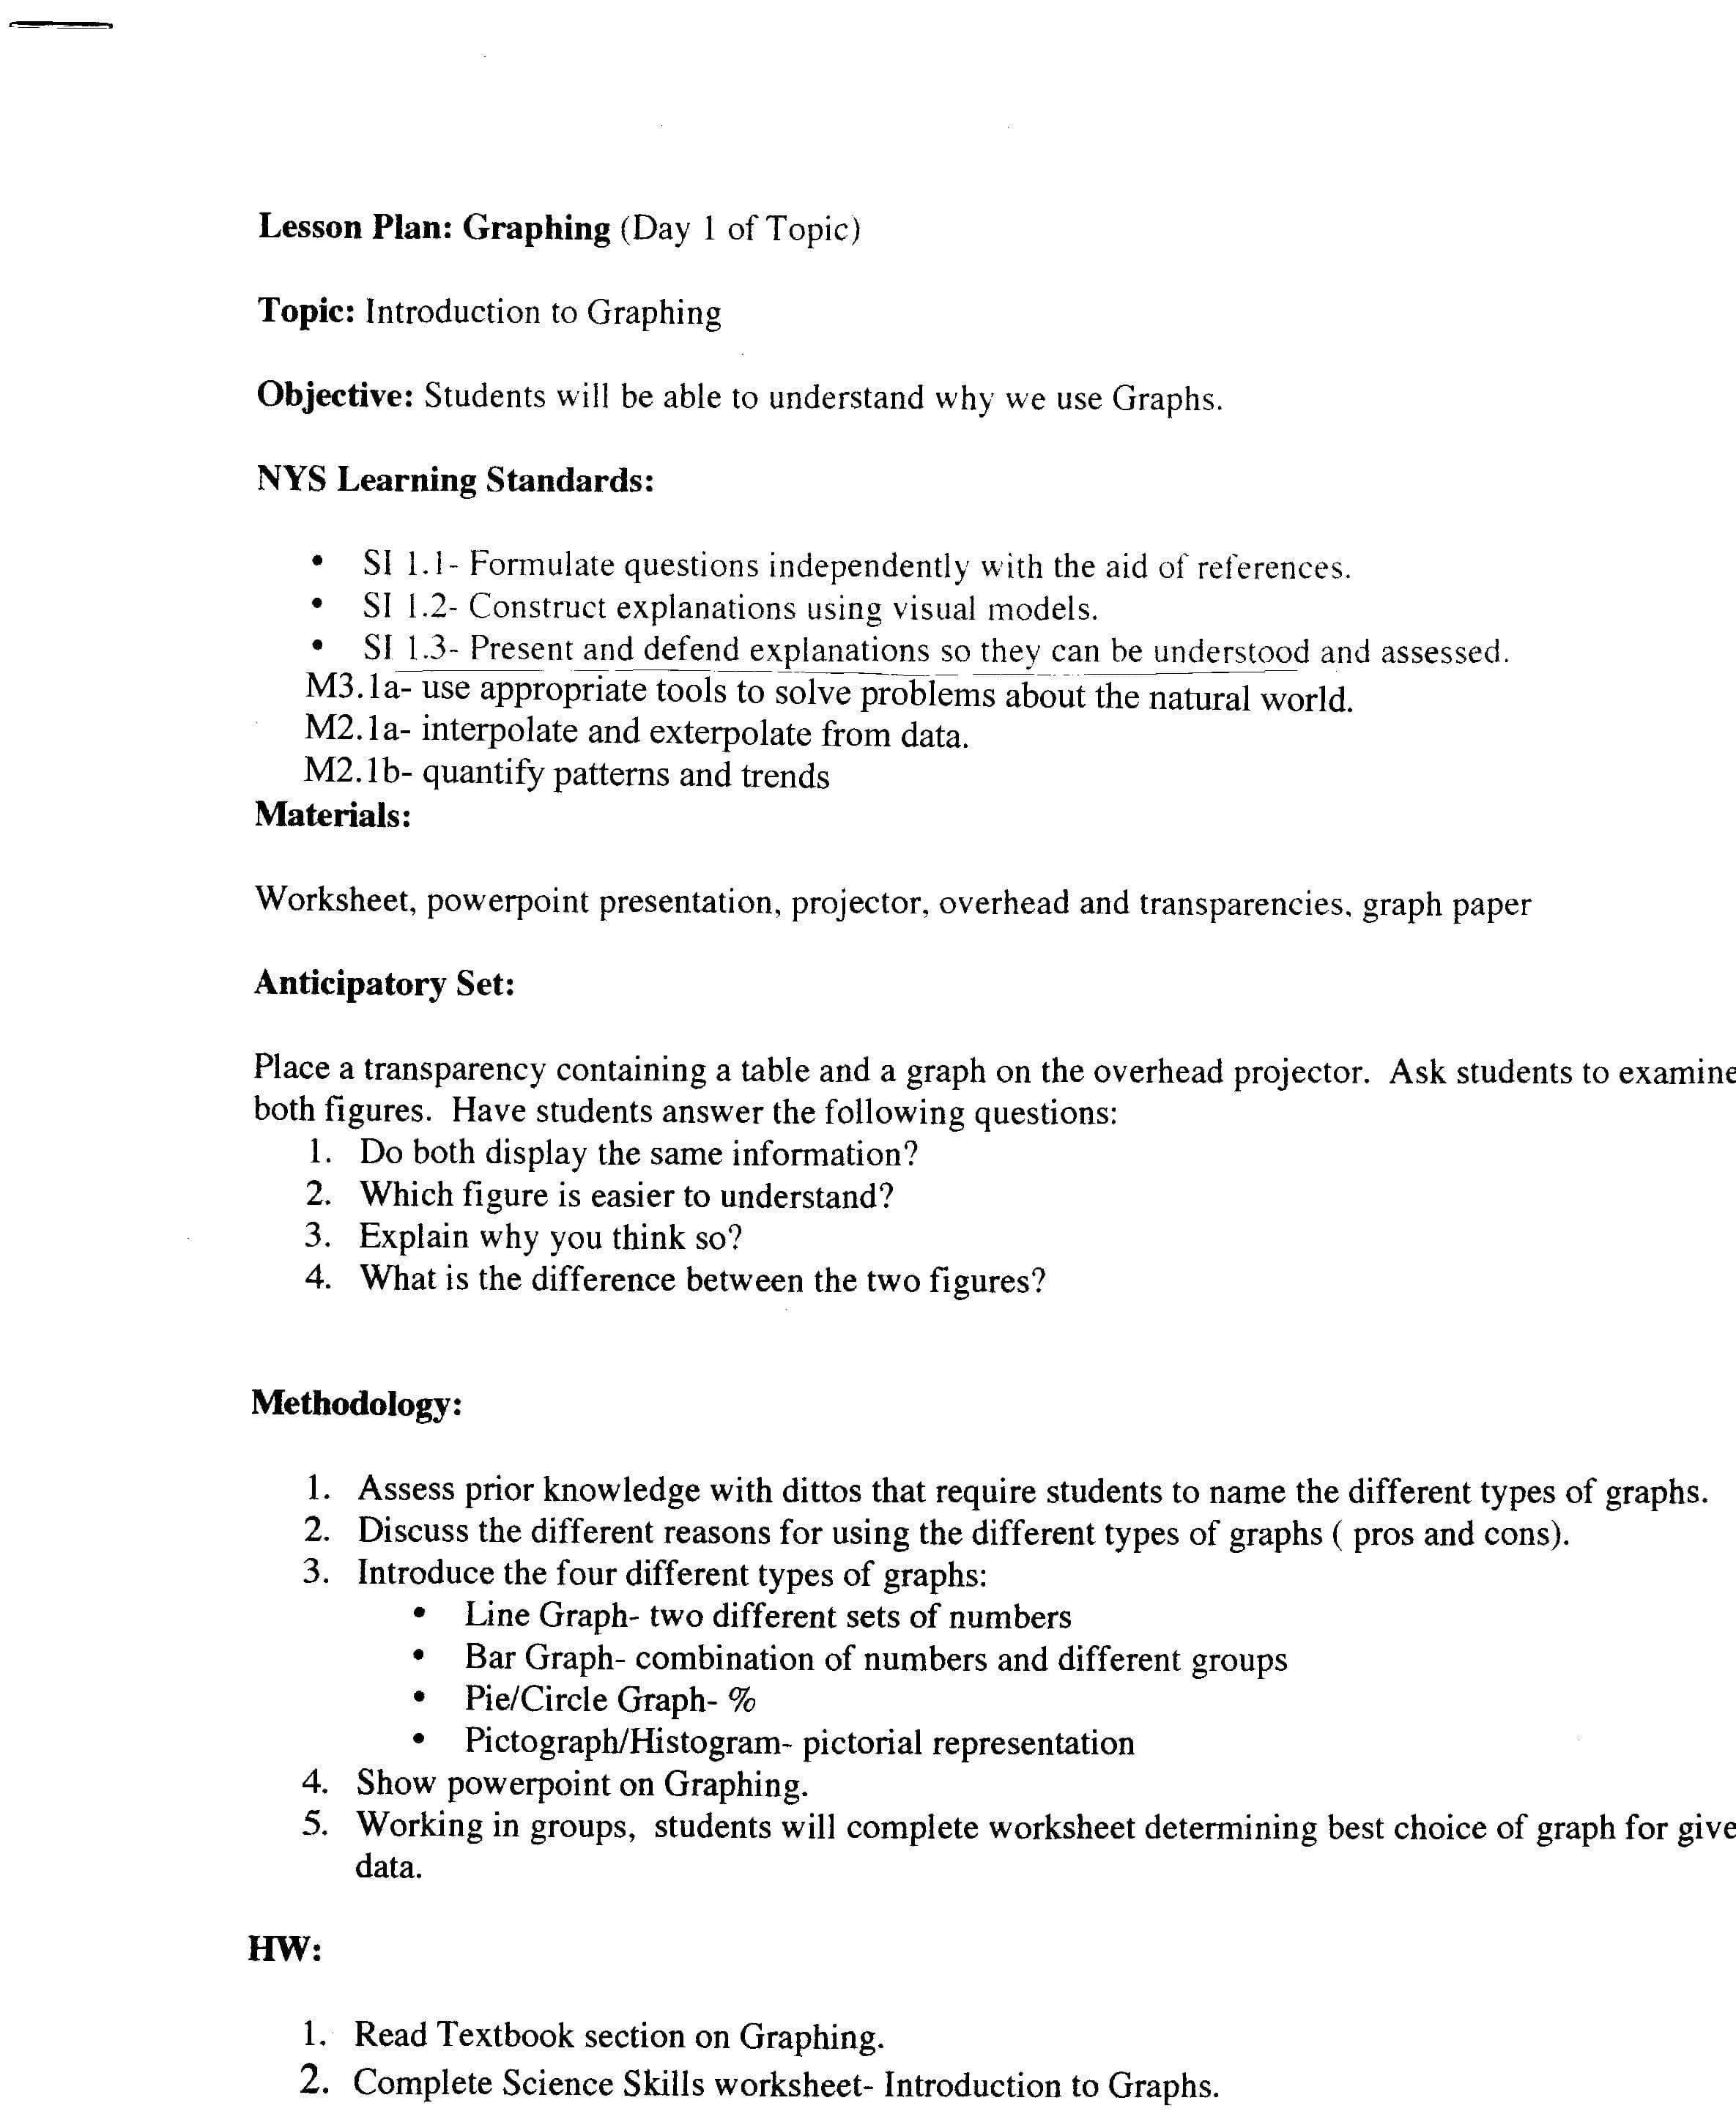 Science Skills Worksheet